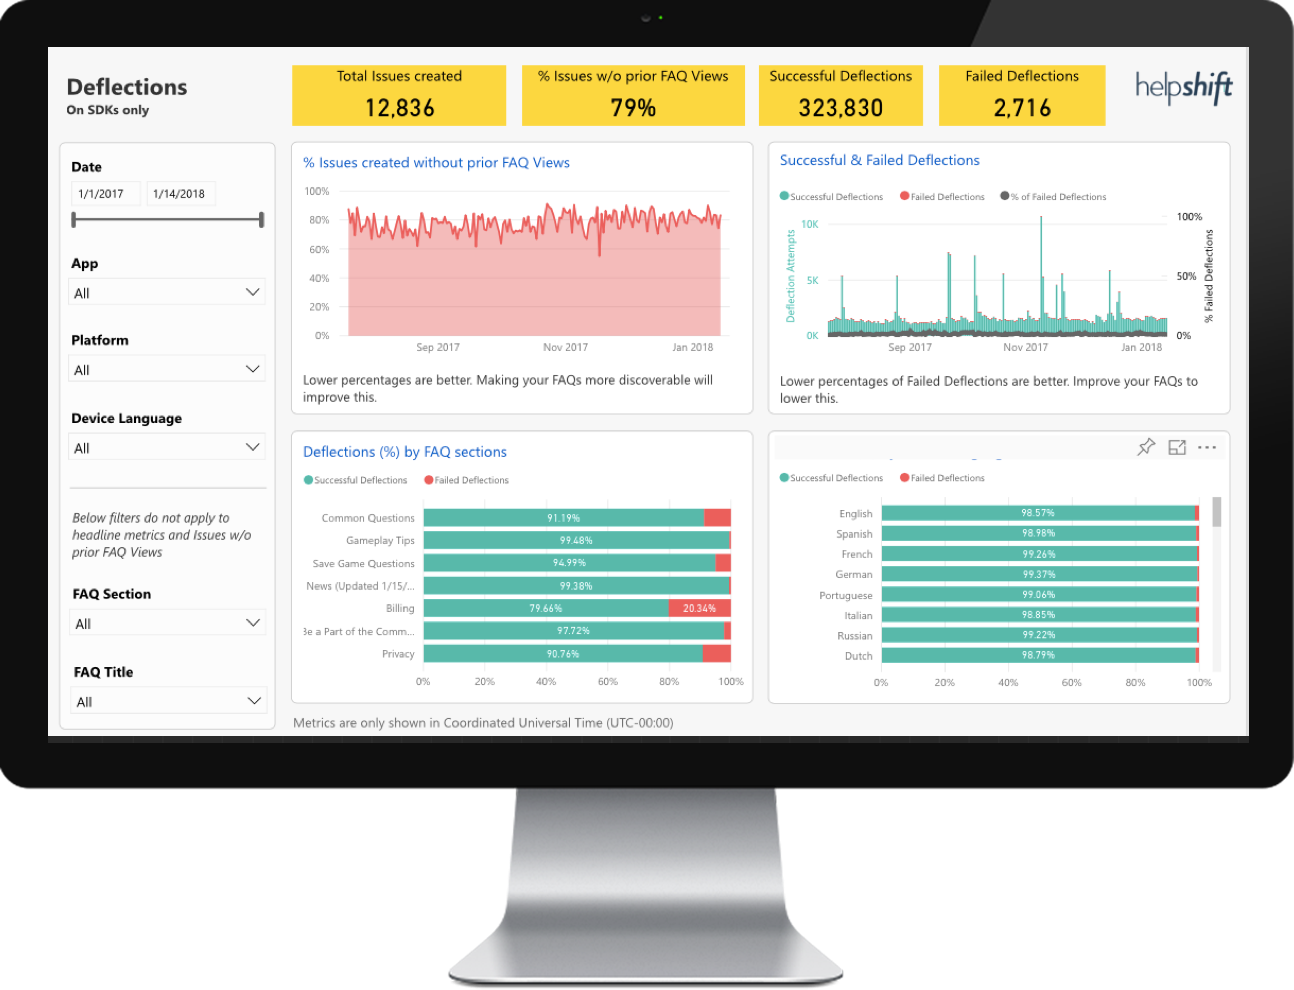 Metrics such as total issues, issues without prior FAQ views, deflections, and more can be tracked